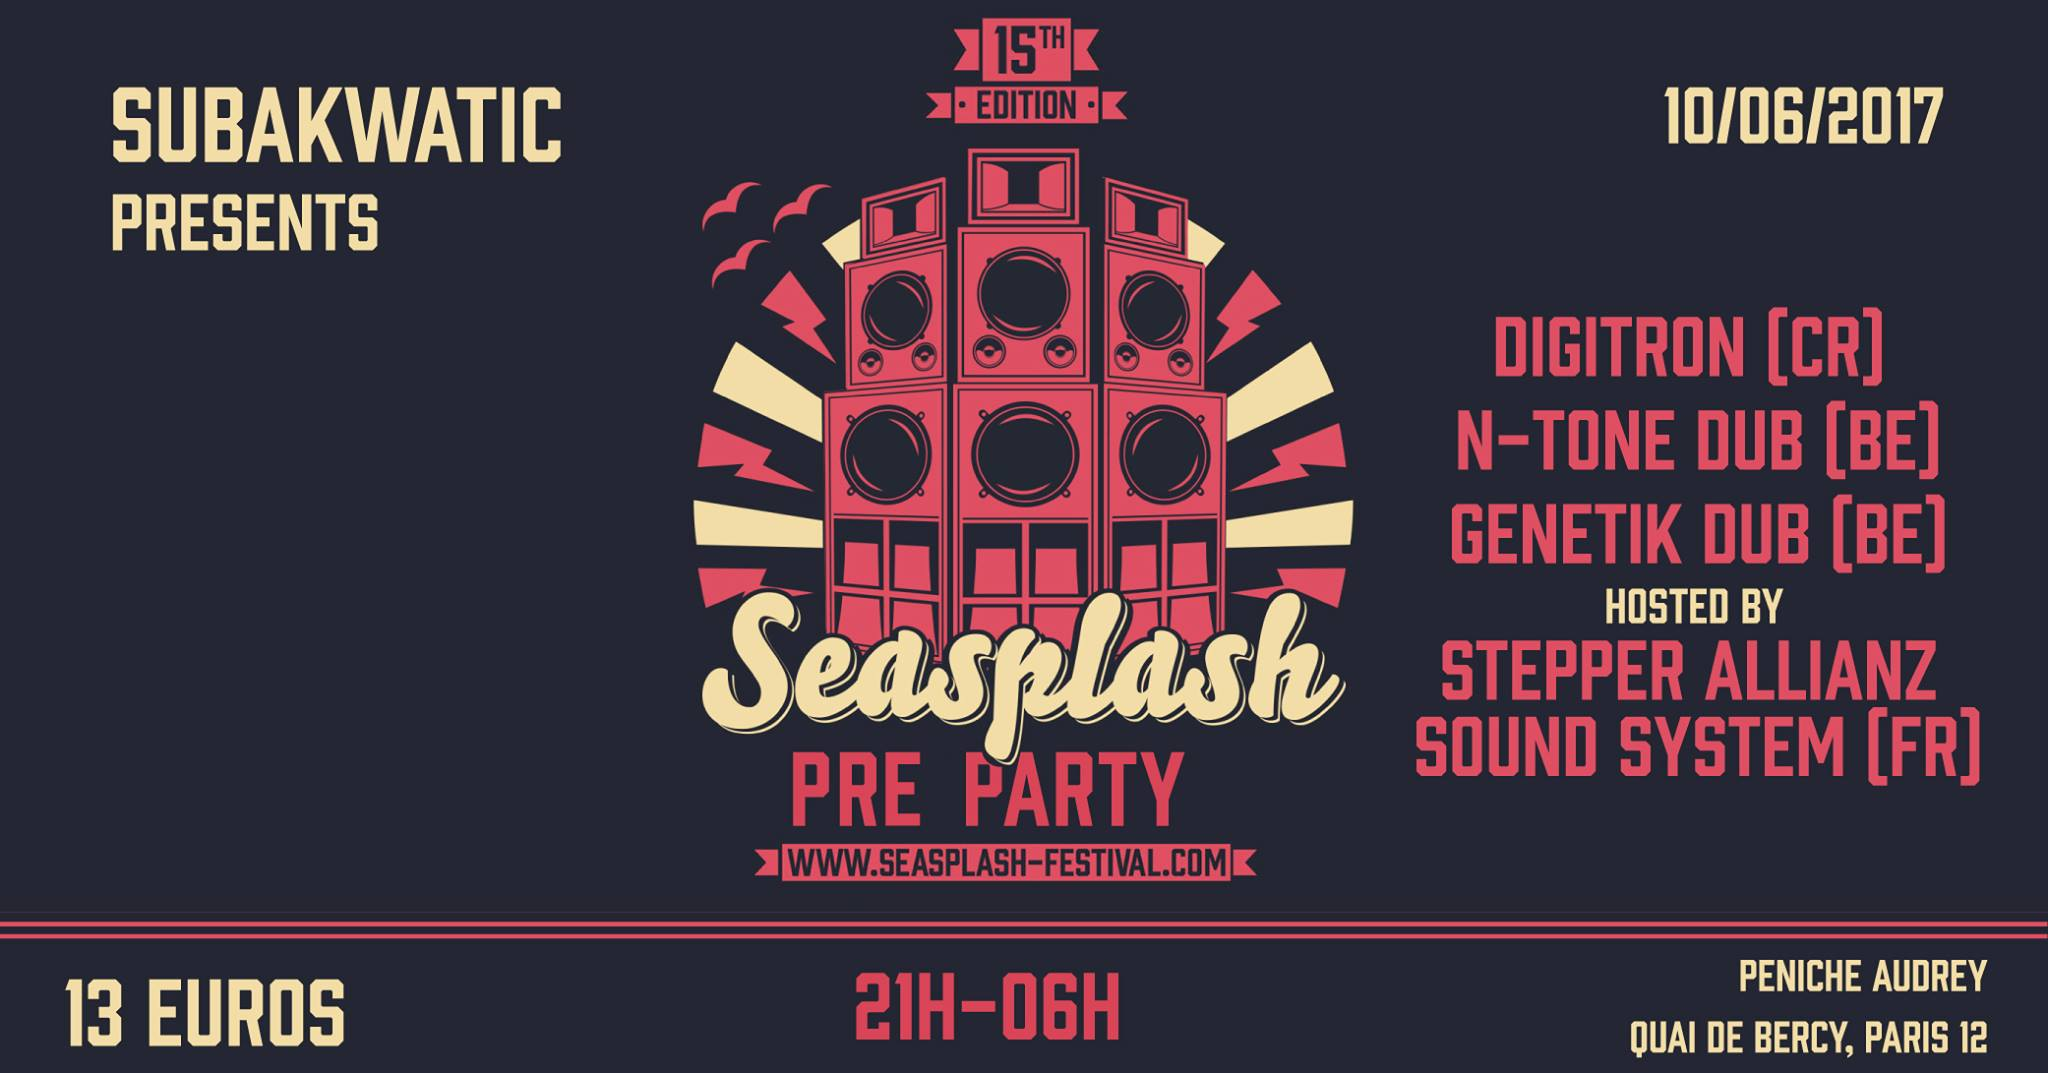 Seasplash warmup party in Paris on 10th June 2017